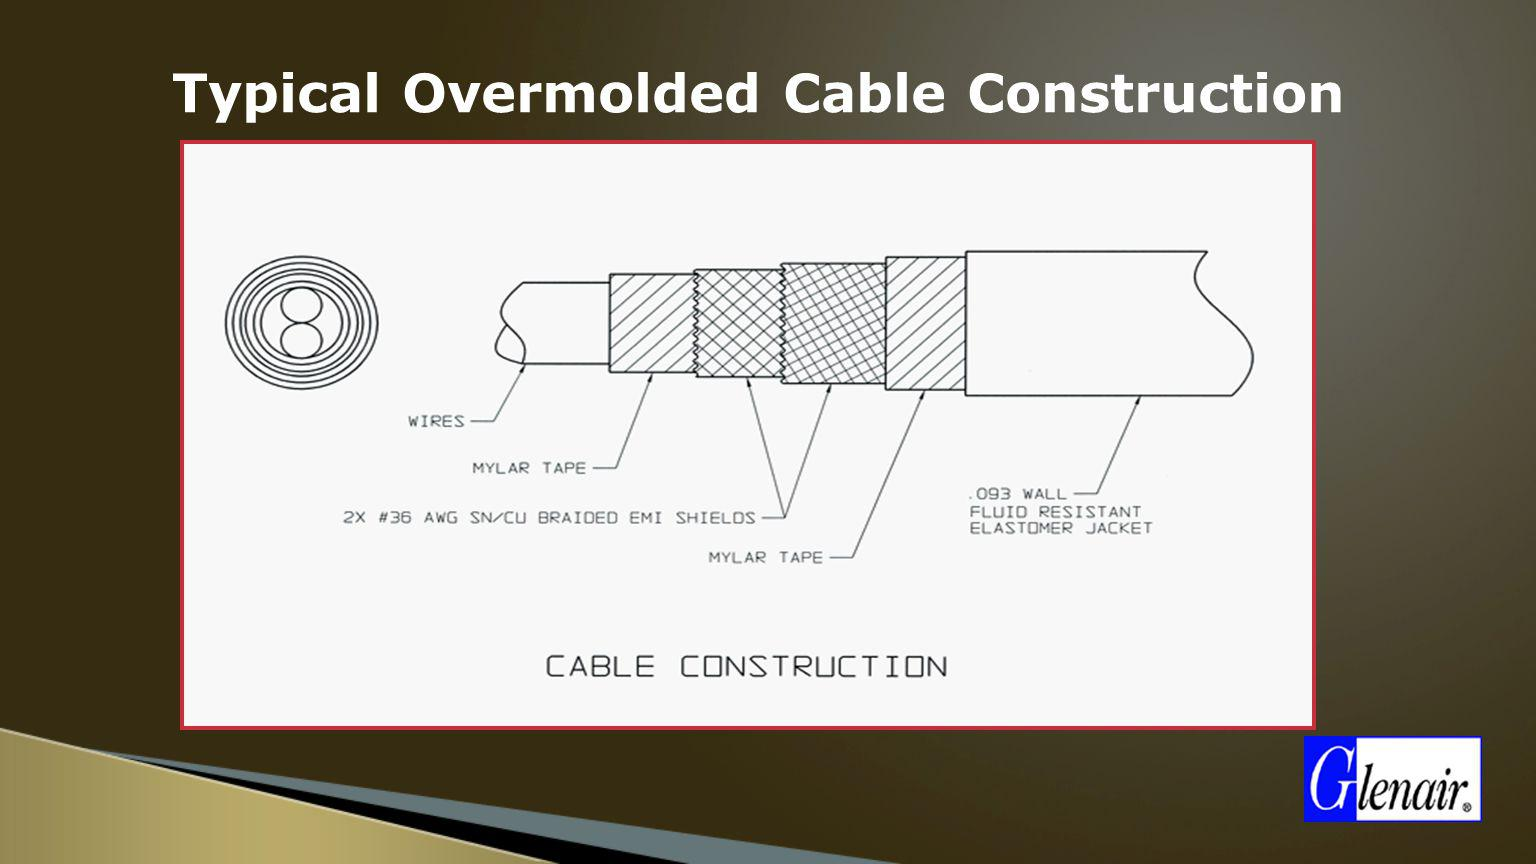 Interconnect Cable Design And Assembly Ppt Video Online Download Wire Harness Shield 24 Typical Overmolded Construction